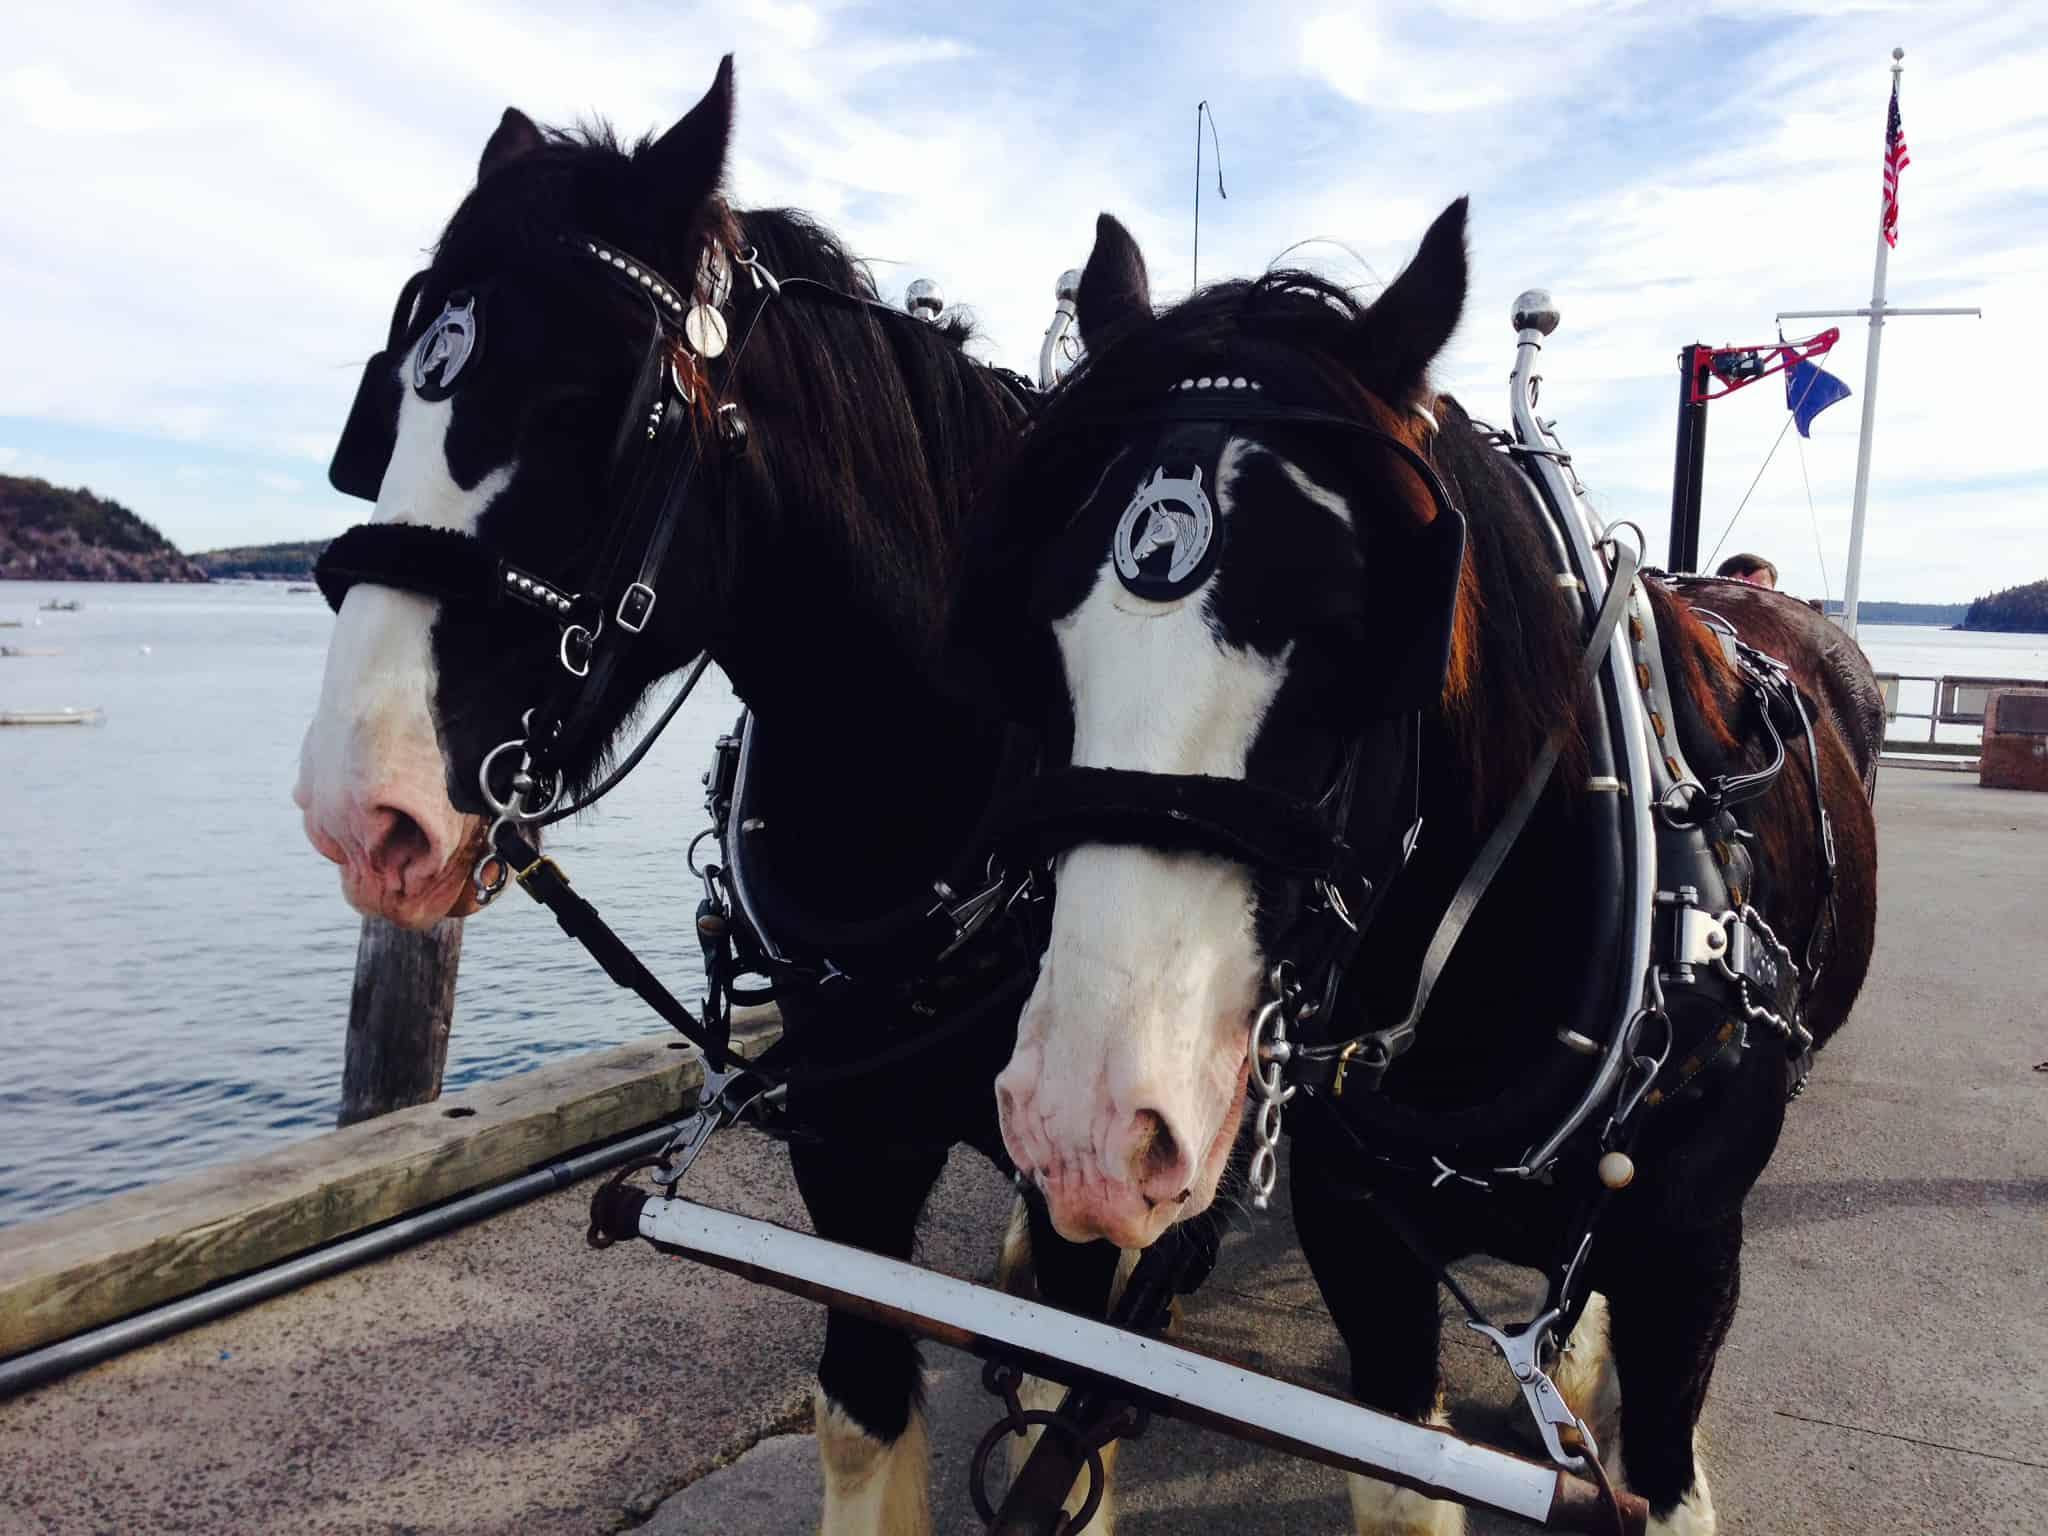 Clydesdale horses.